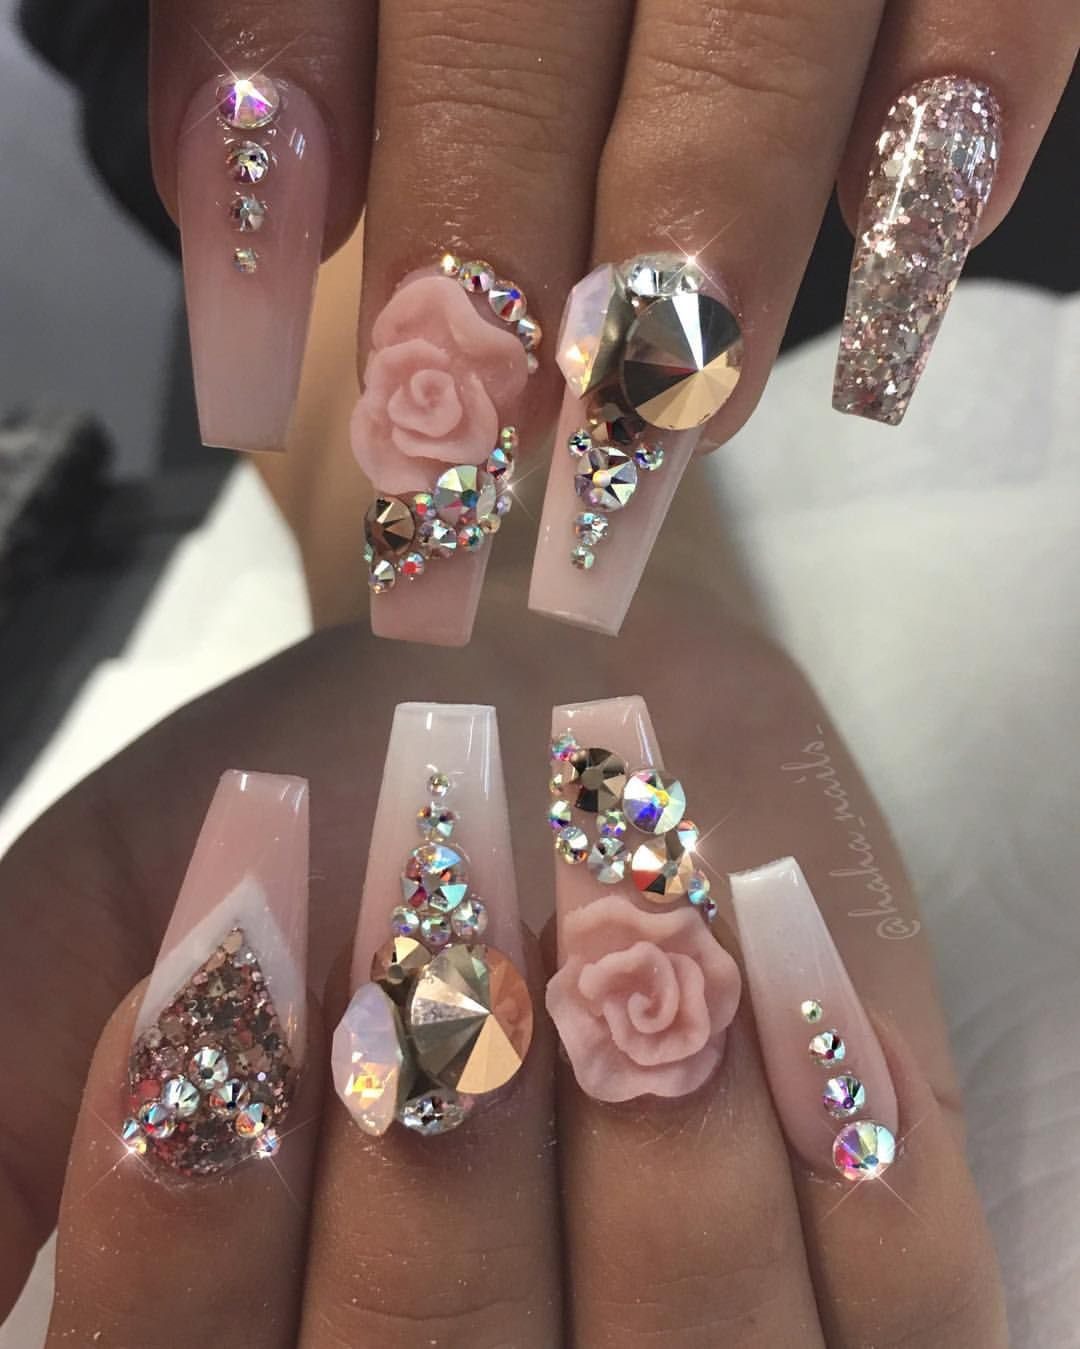 Light pink nails with 3D rose design and lots of gems